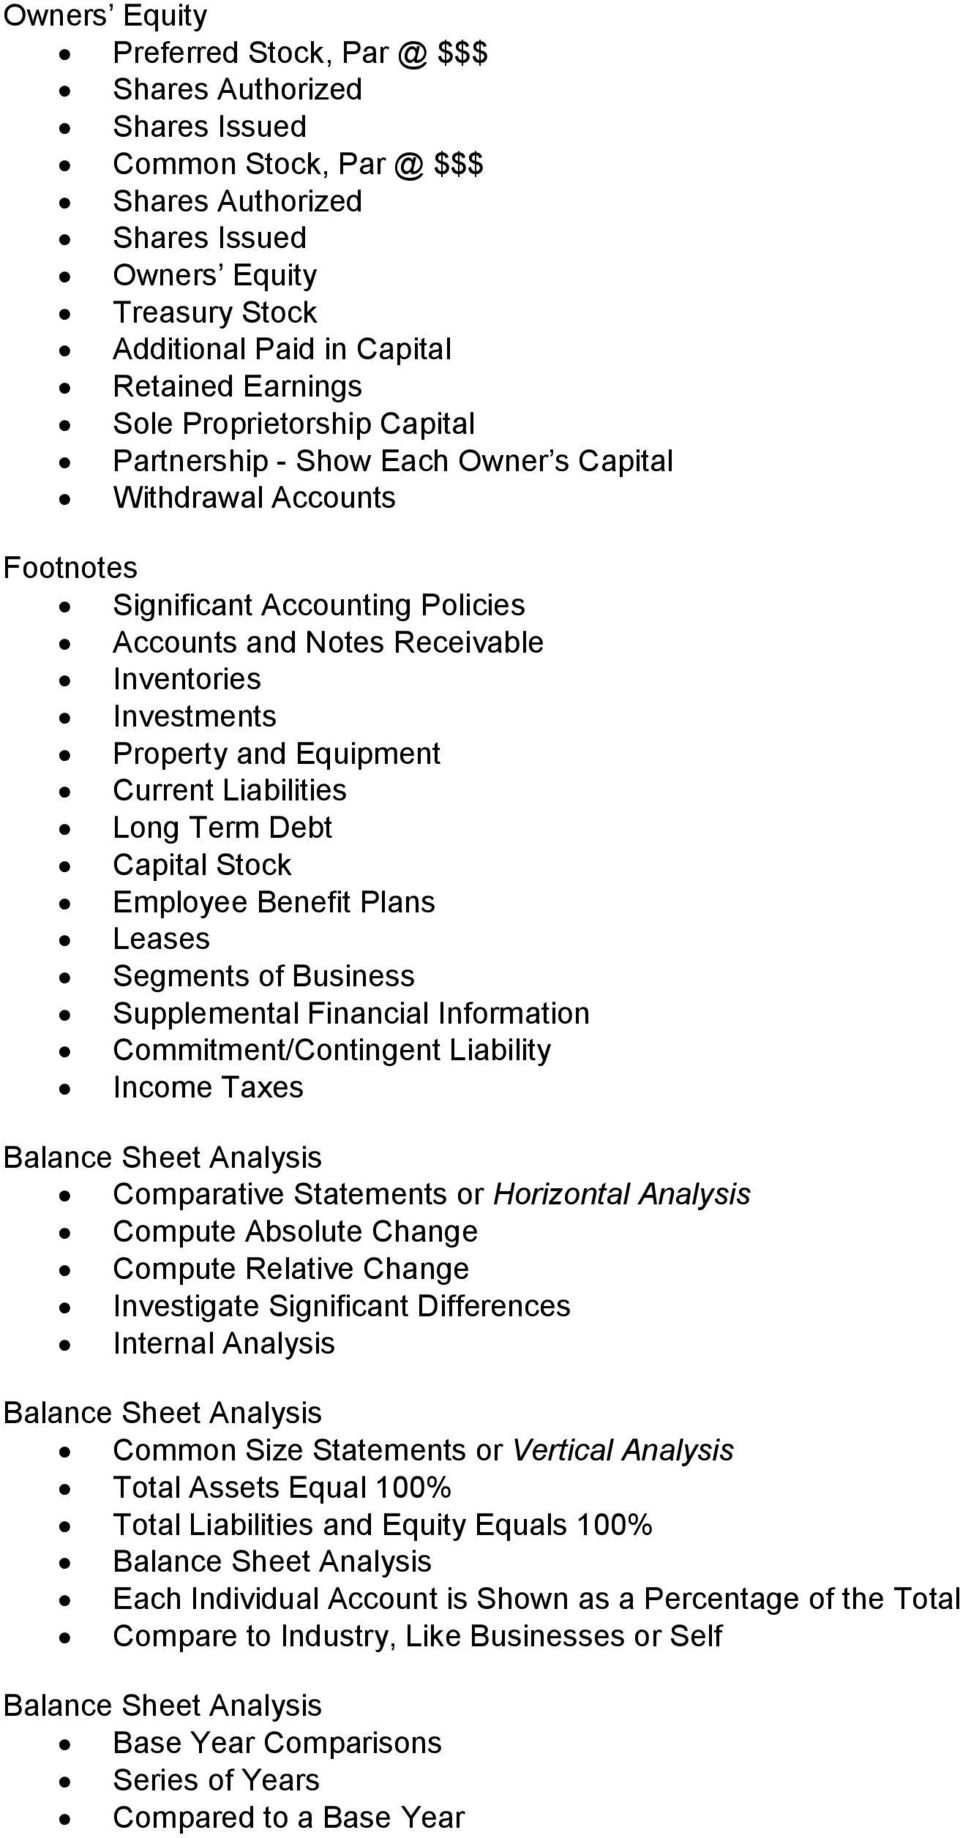 Certified Hospitality Accountant Executive (CHAE) Review HITEC